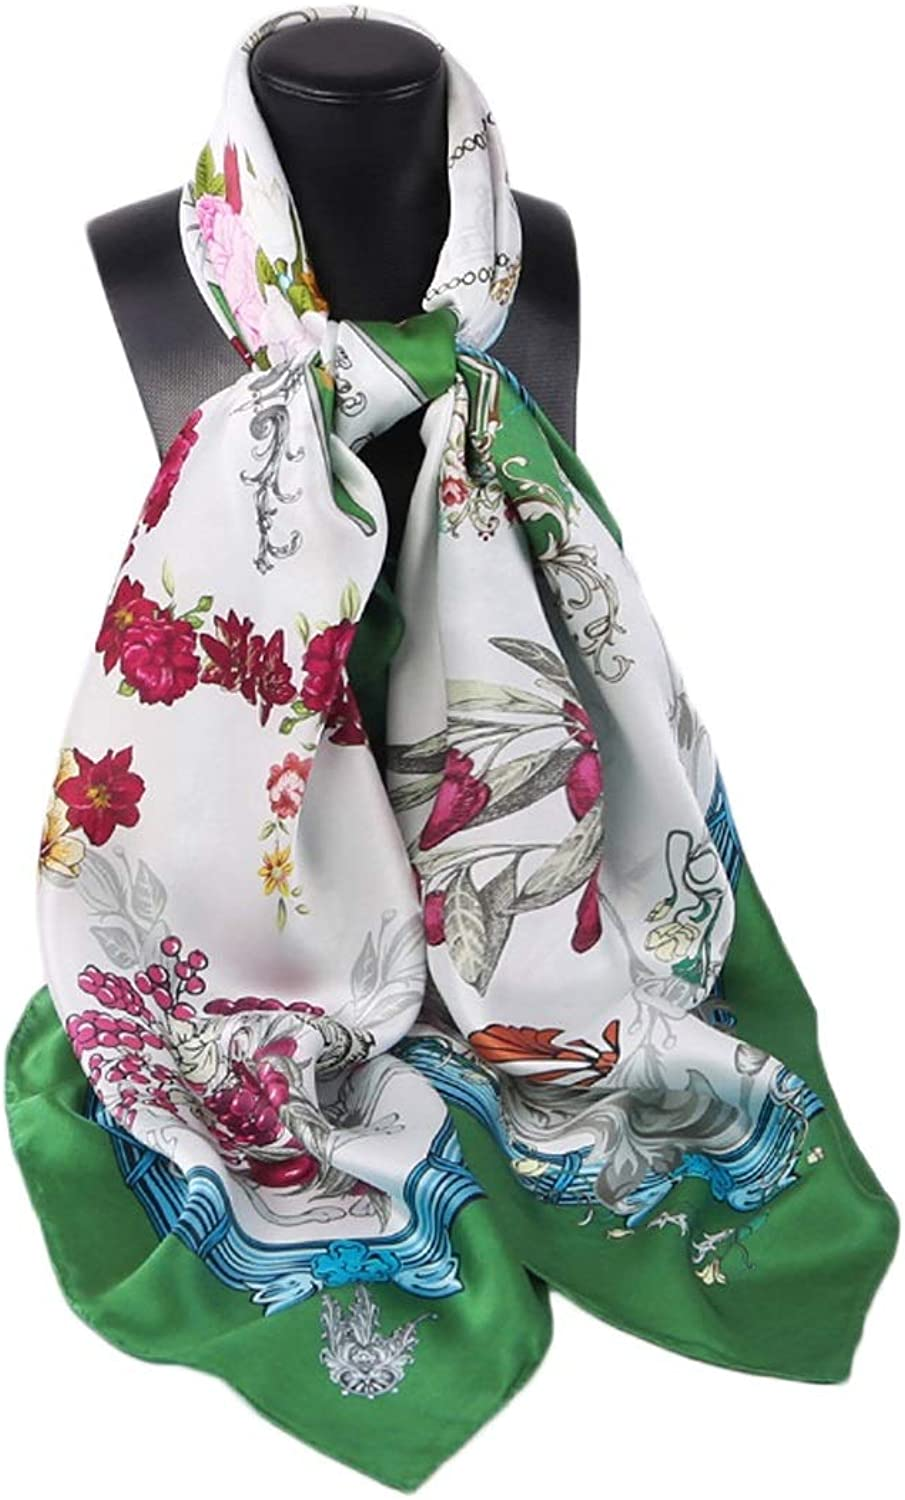 Shawl MultiFunction Square Scarf Square Towel Sunscreen Silk Scarf Cold Weather Scarves (color   Scarf, Size   135x135CM)